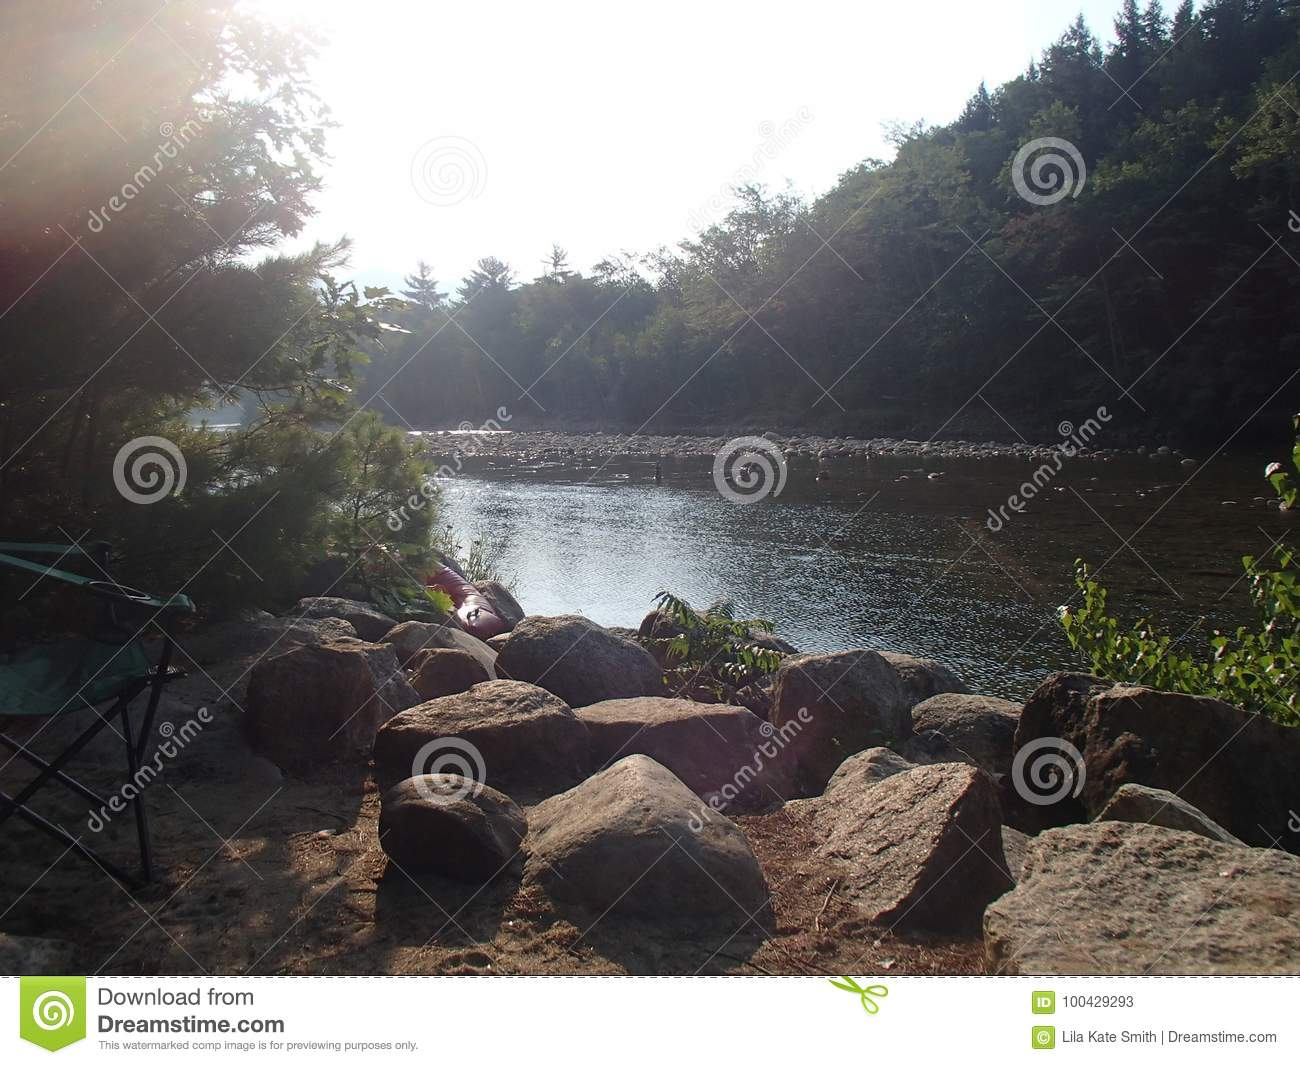 Camping At Glen Ellis In New Hampshire Campsites Beside The Lazy River Talk About Stress Free No Phone Relaxation Type Of Vacation Float On The River